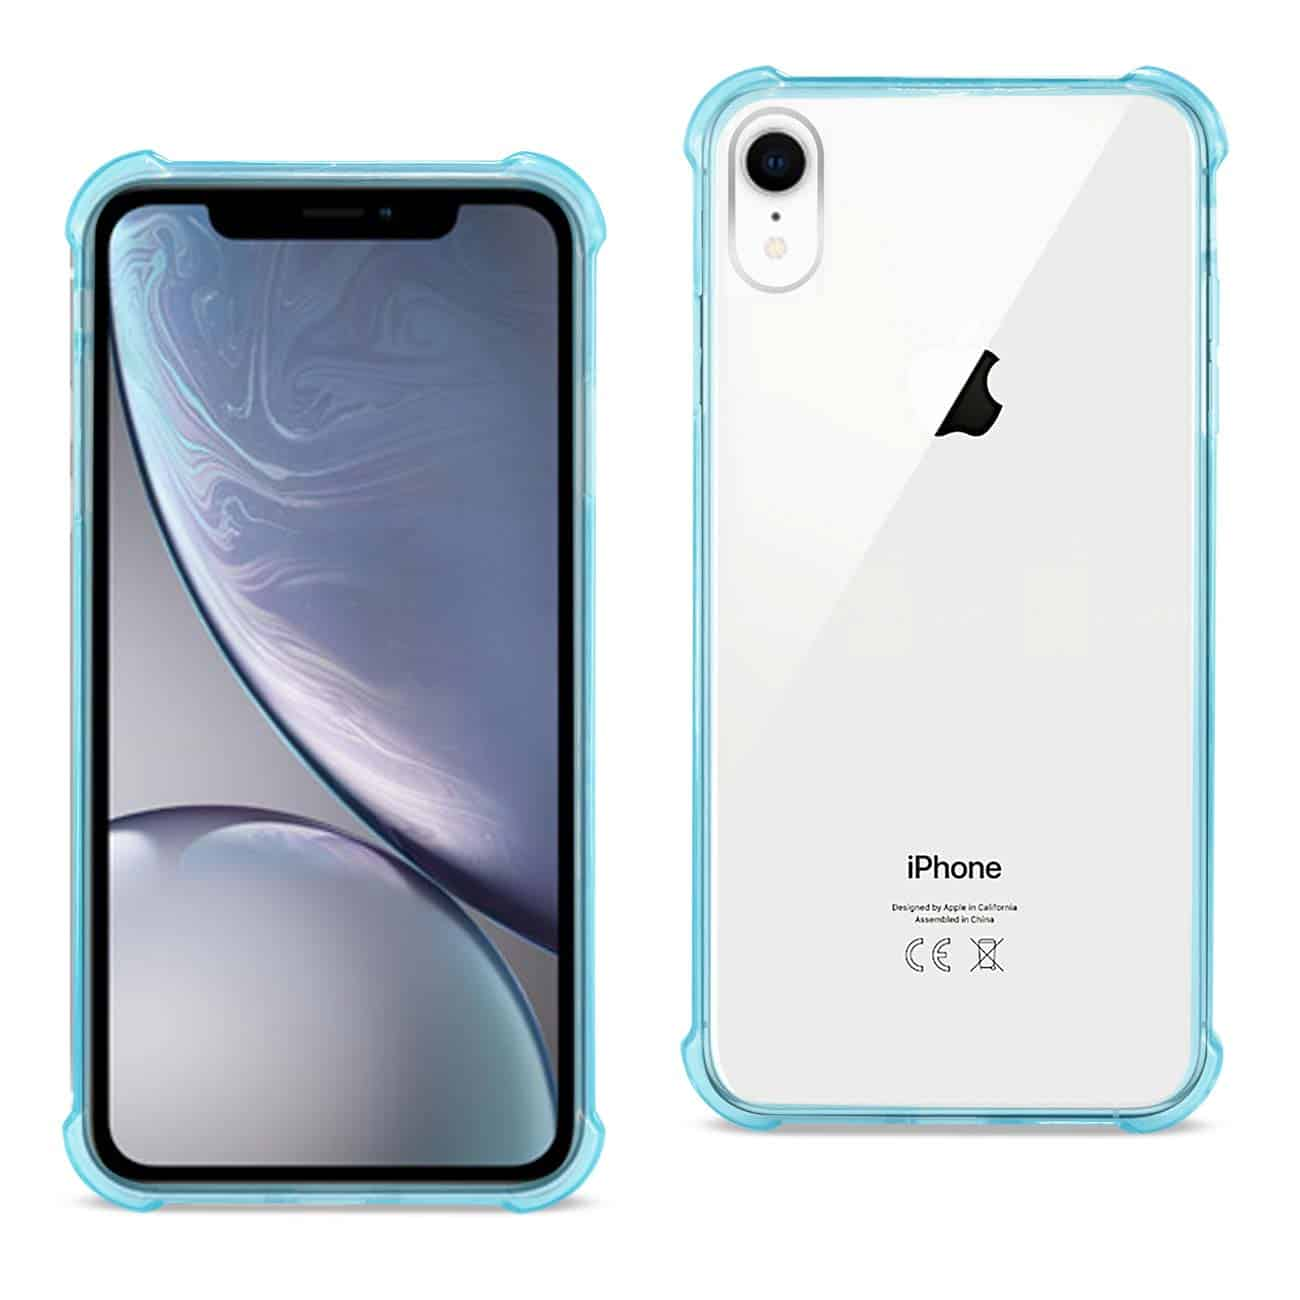 iPhone XR Clear Bumper Case With Air Cushion Protection In Clear Navy